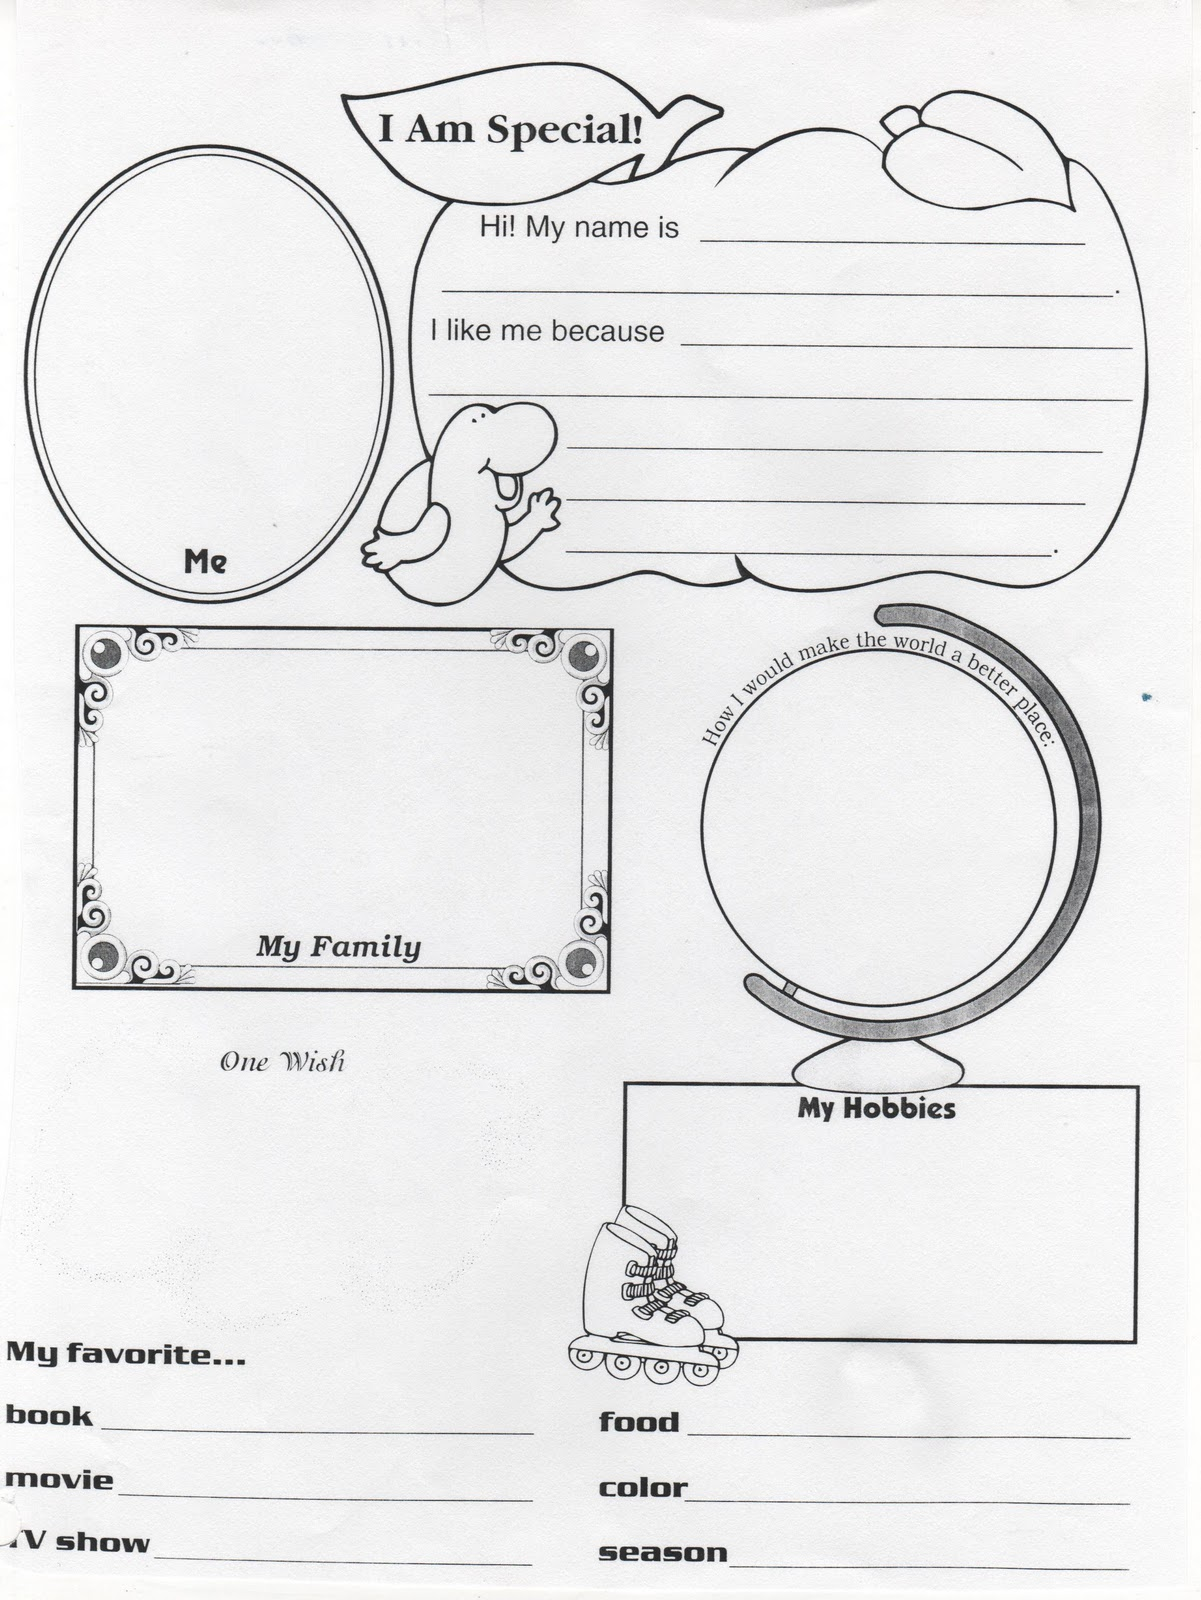 ELEMENTARY SCHOOL ENRICHMENT ACTIVITIES BEGINNING OF THE YEAR – Get to Know You Worksheets